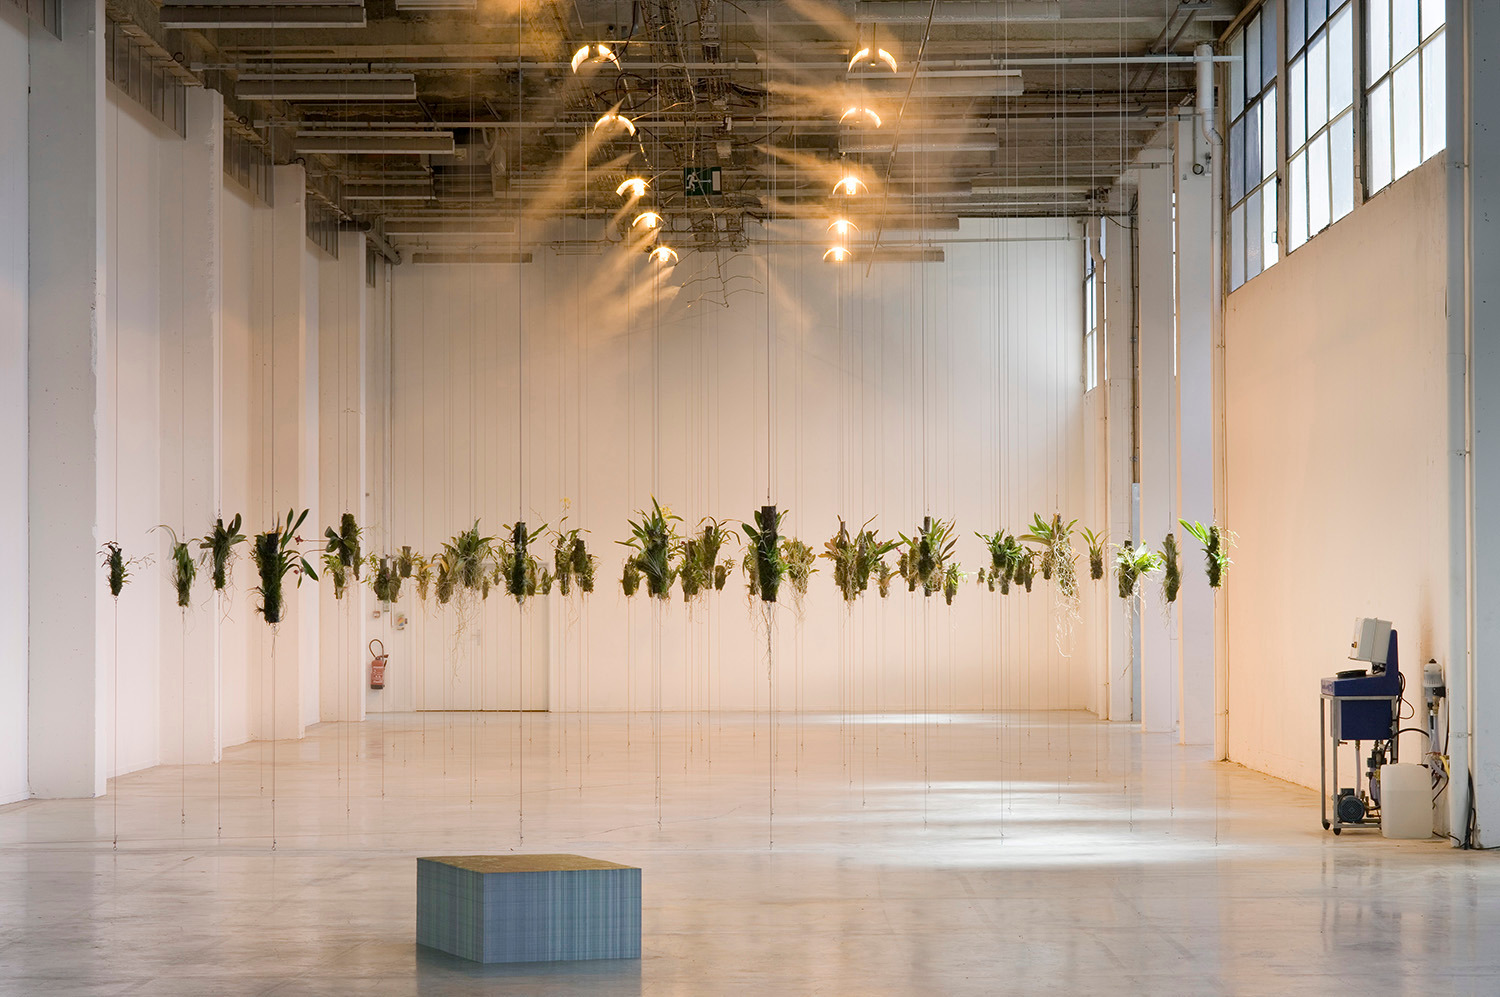 Installation view, 'Through the Woods to Find the Forest, in Tropico-Vegétal (LOST IN PARADISE)', Palais de Tokyo, Paris, 2006